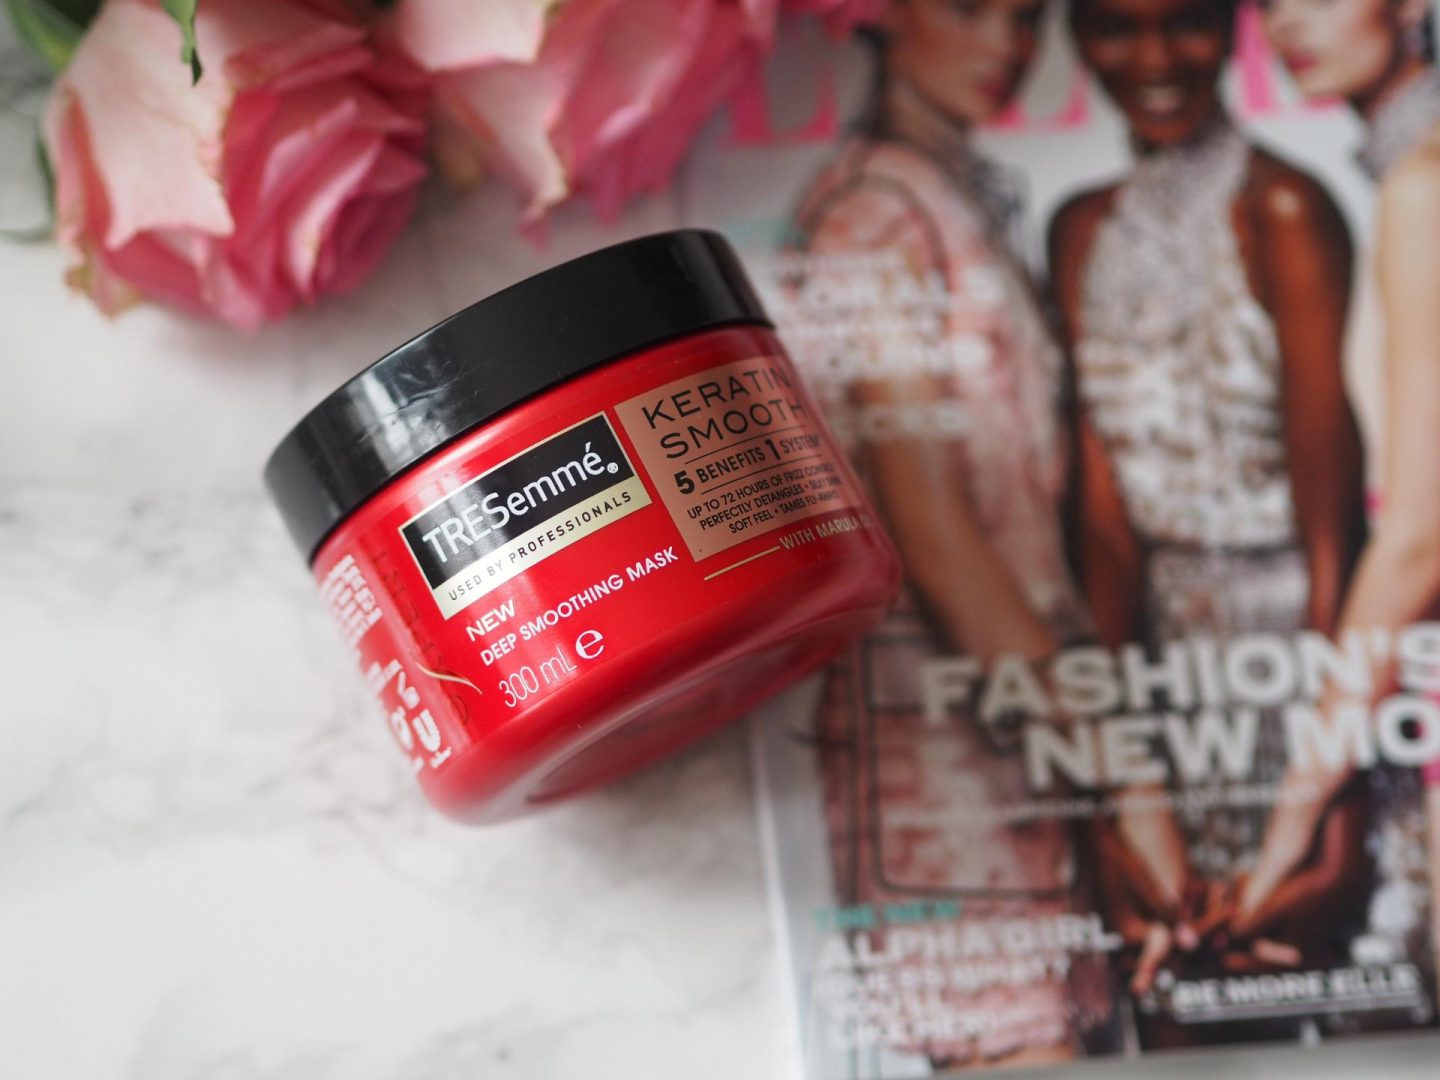 Budget Friendly Haircare - Product Tresemme Keratin Smooth Deep Smoothing Mask